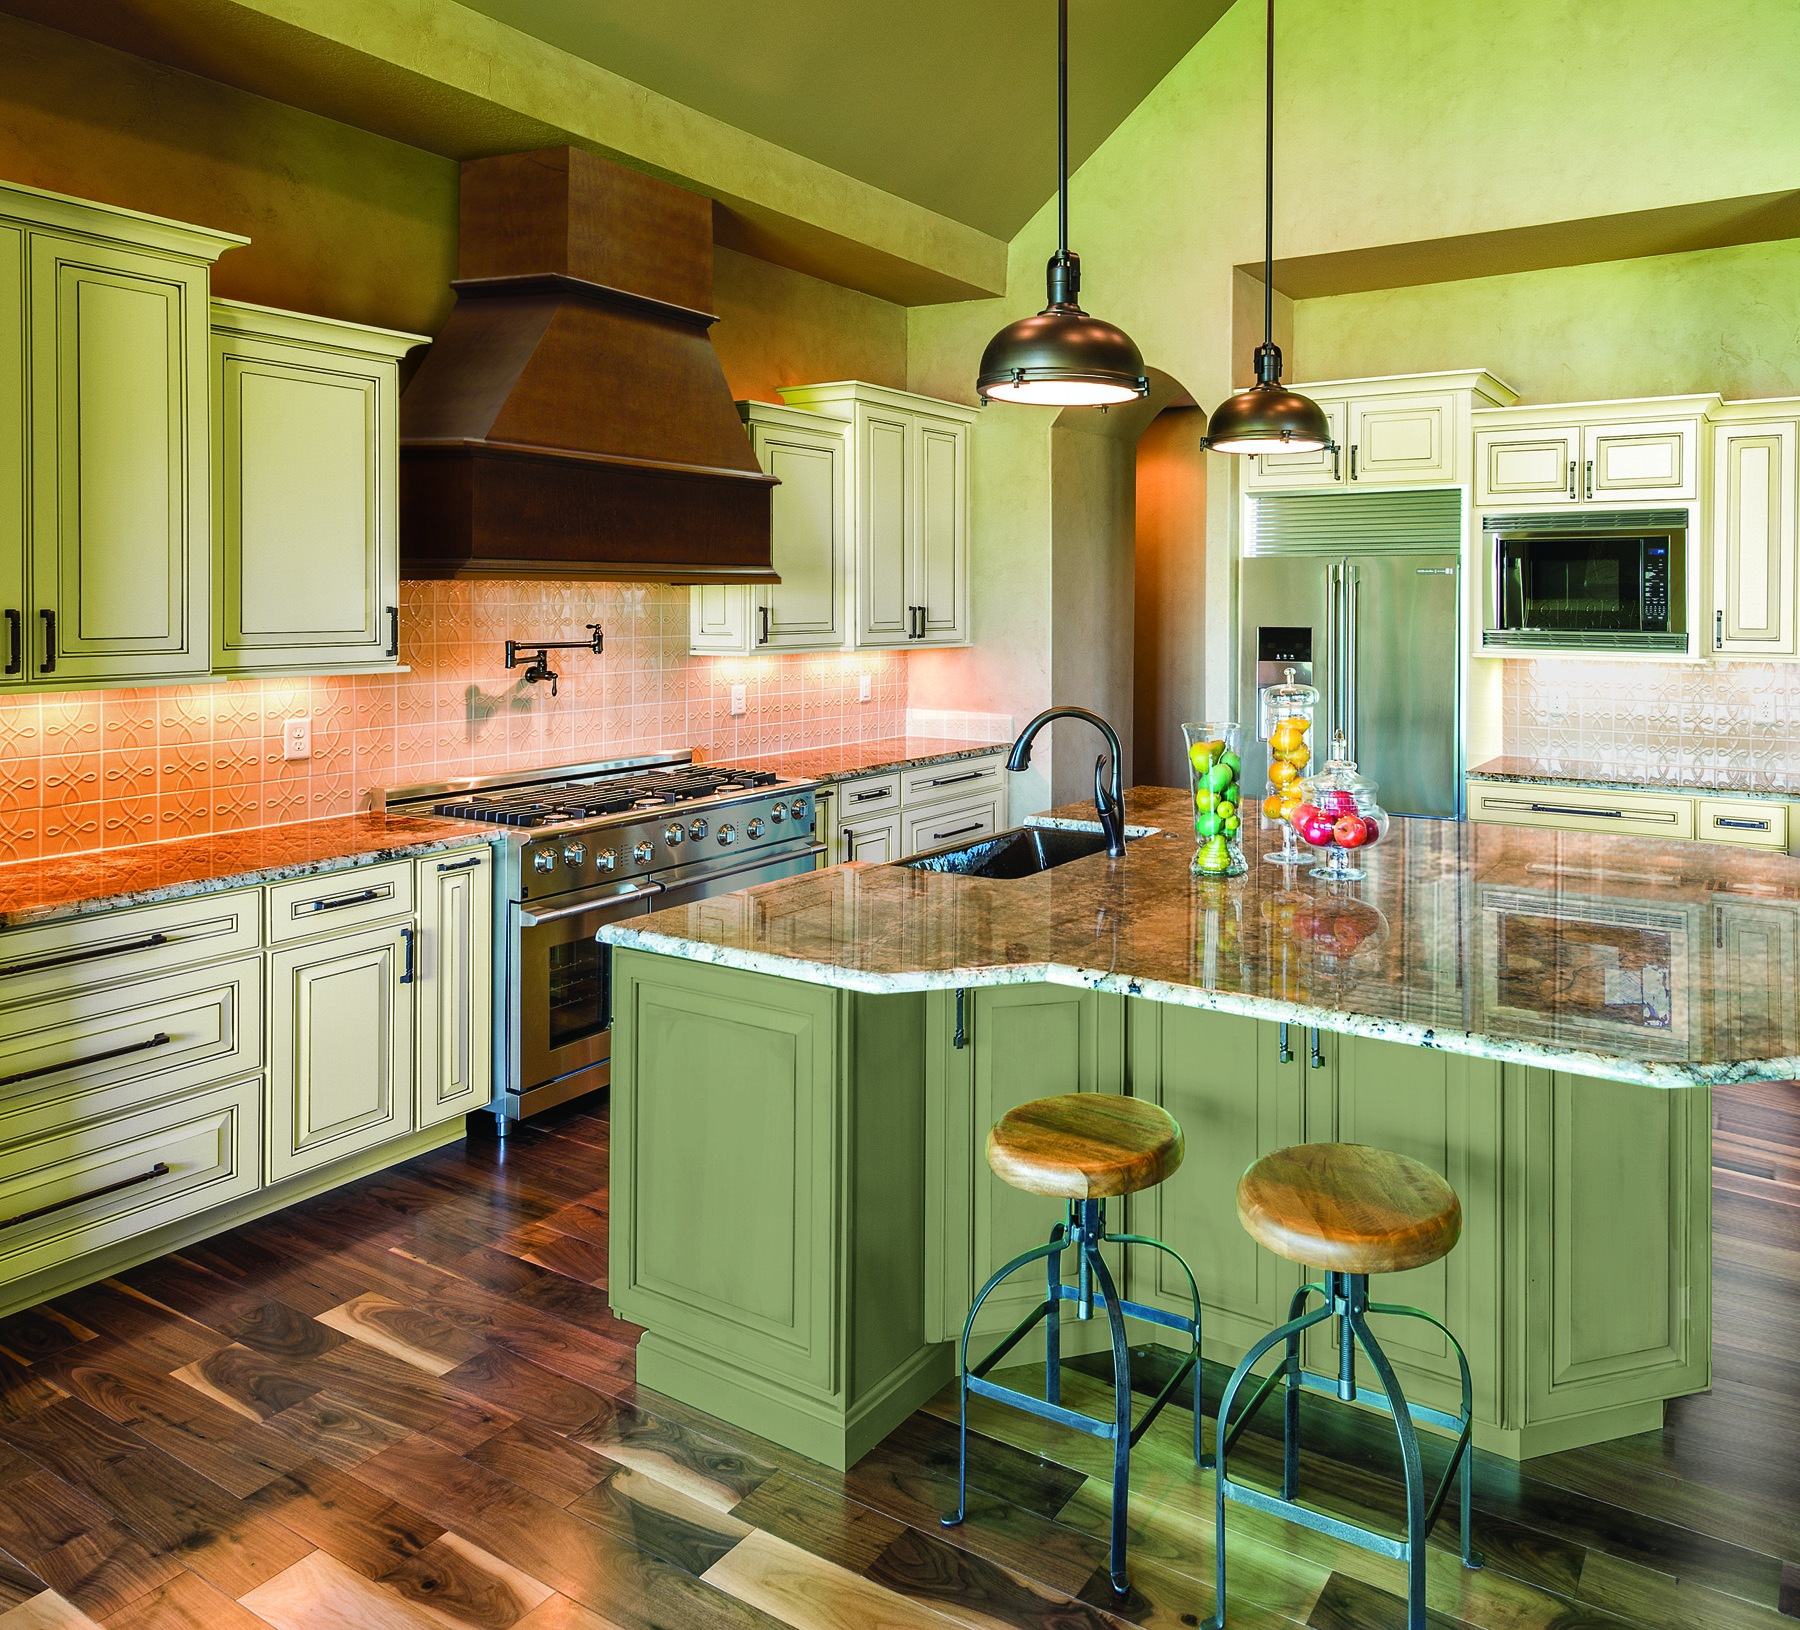 New Paint Colors Bring High-Fashion Home To Kitchen